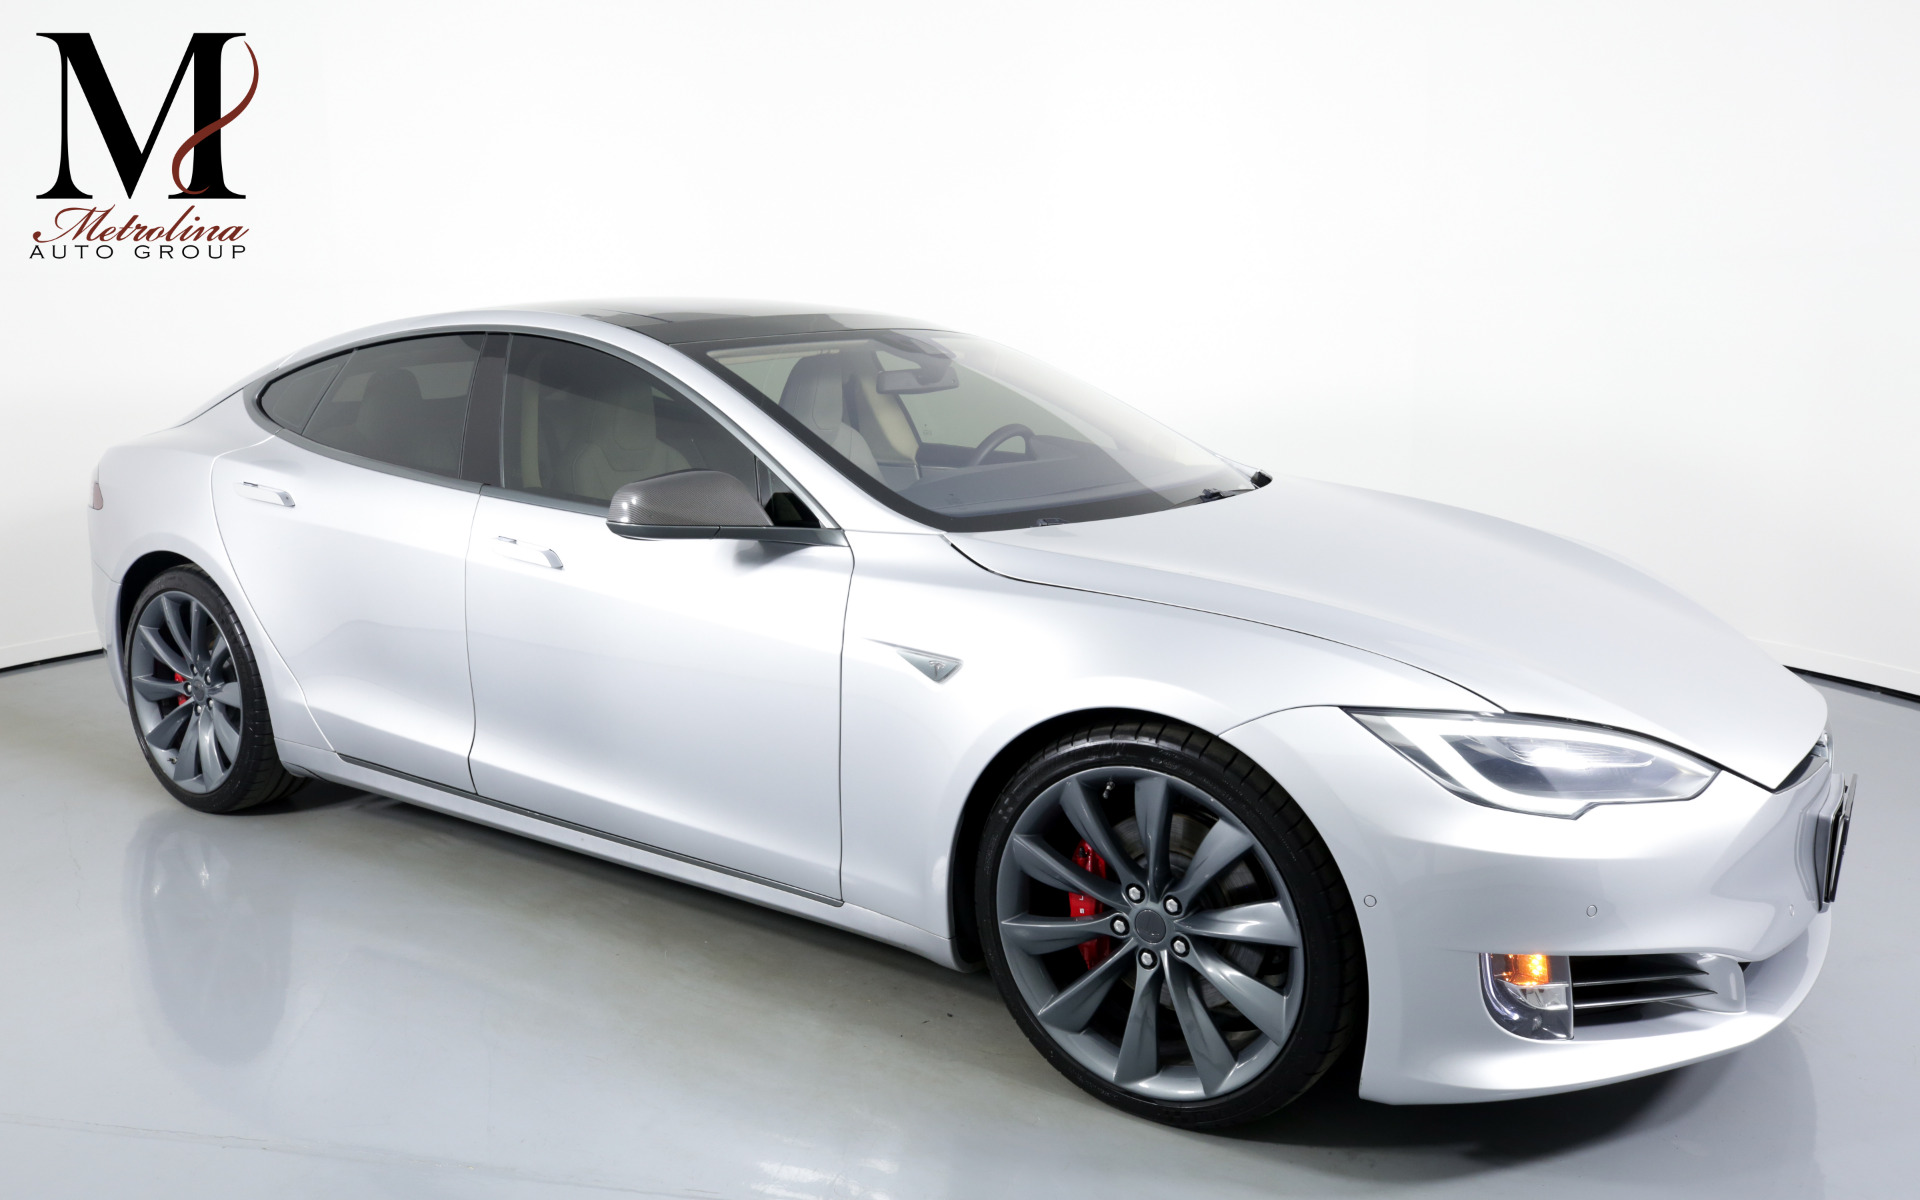 Used 2016 Tesla Model S P90D AWD 4dr Liftback (midyear release) for sale $71,456 at Metrolina Auto Group in Charlotte NC 28217 - 1